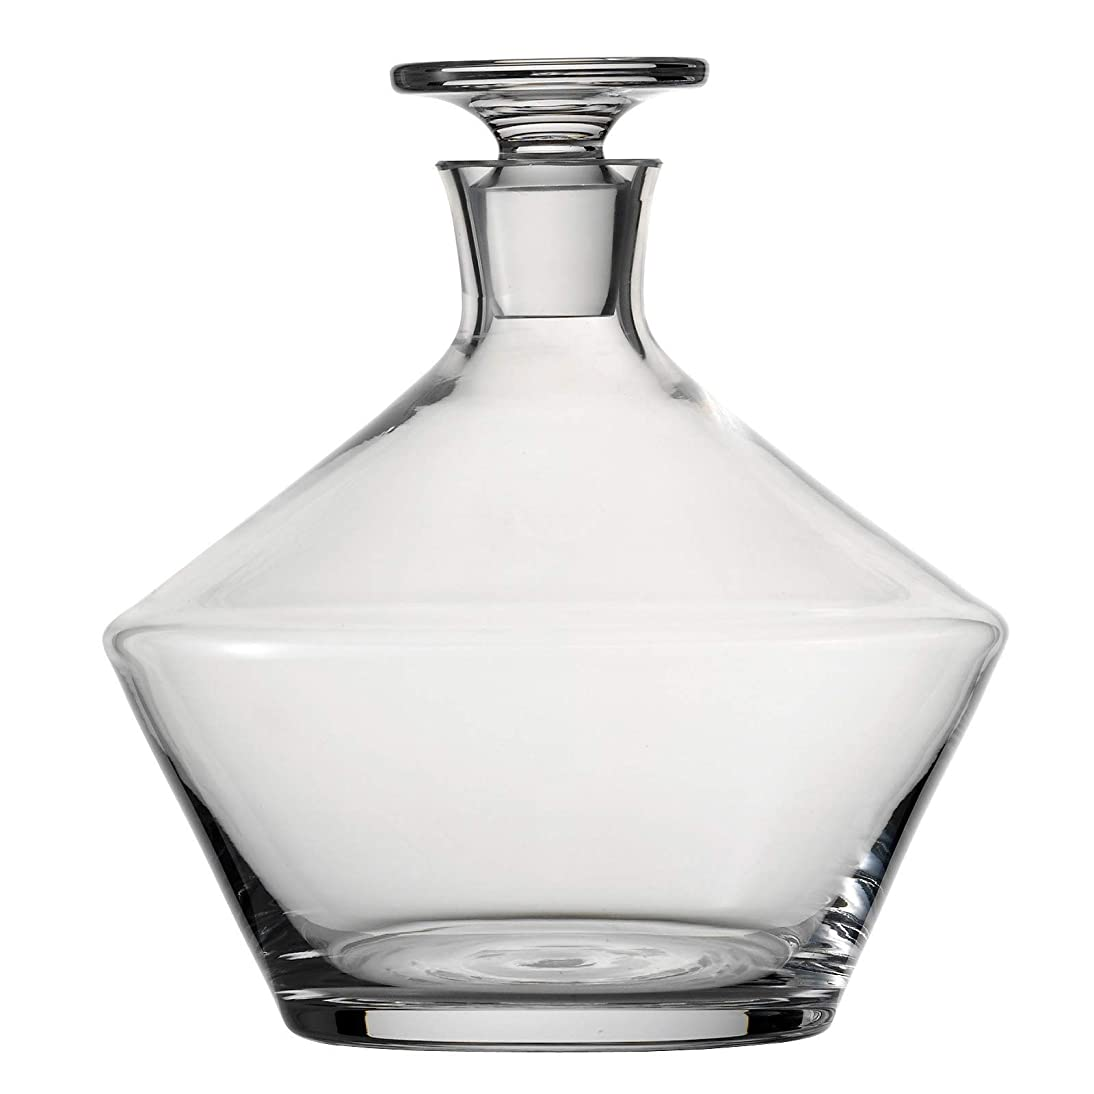 満了意志に反するあさり(Whiskey) - Schott Zwiesel Tritan Crystal Glass Pure Collection Whiskey Decanter With Stopper